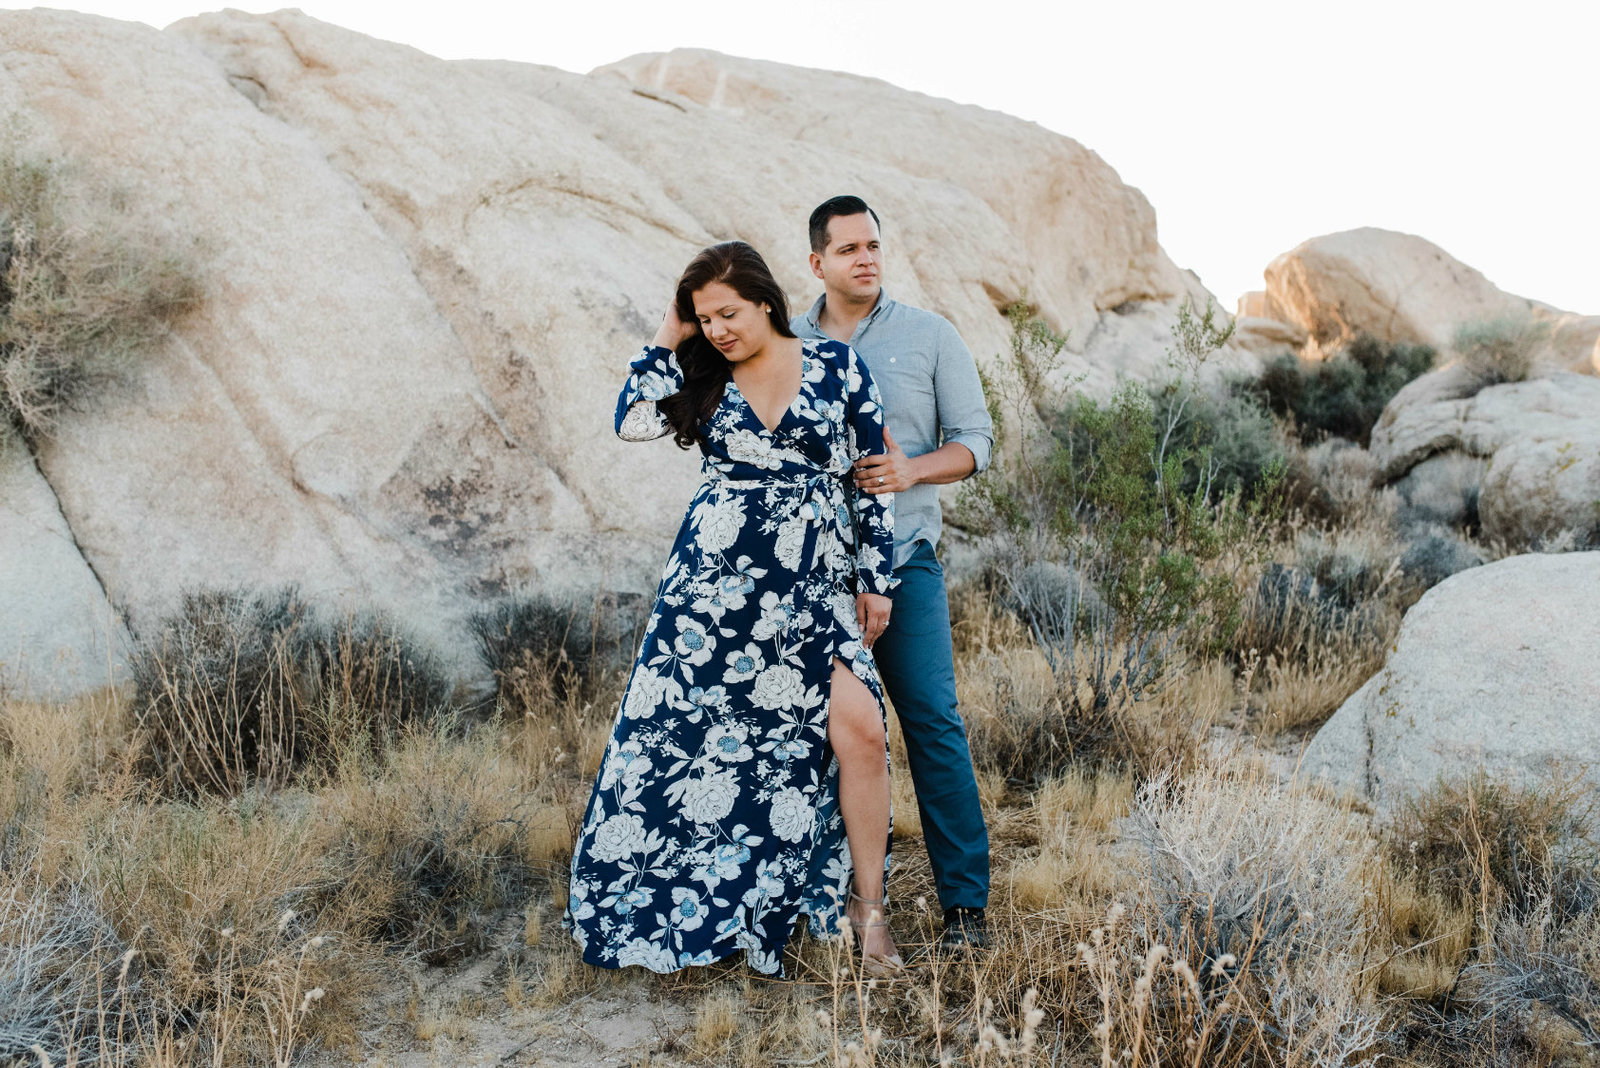 Engagement photos shot in the beautiful Mojave Desert